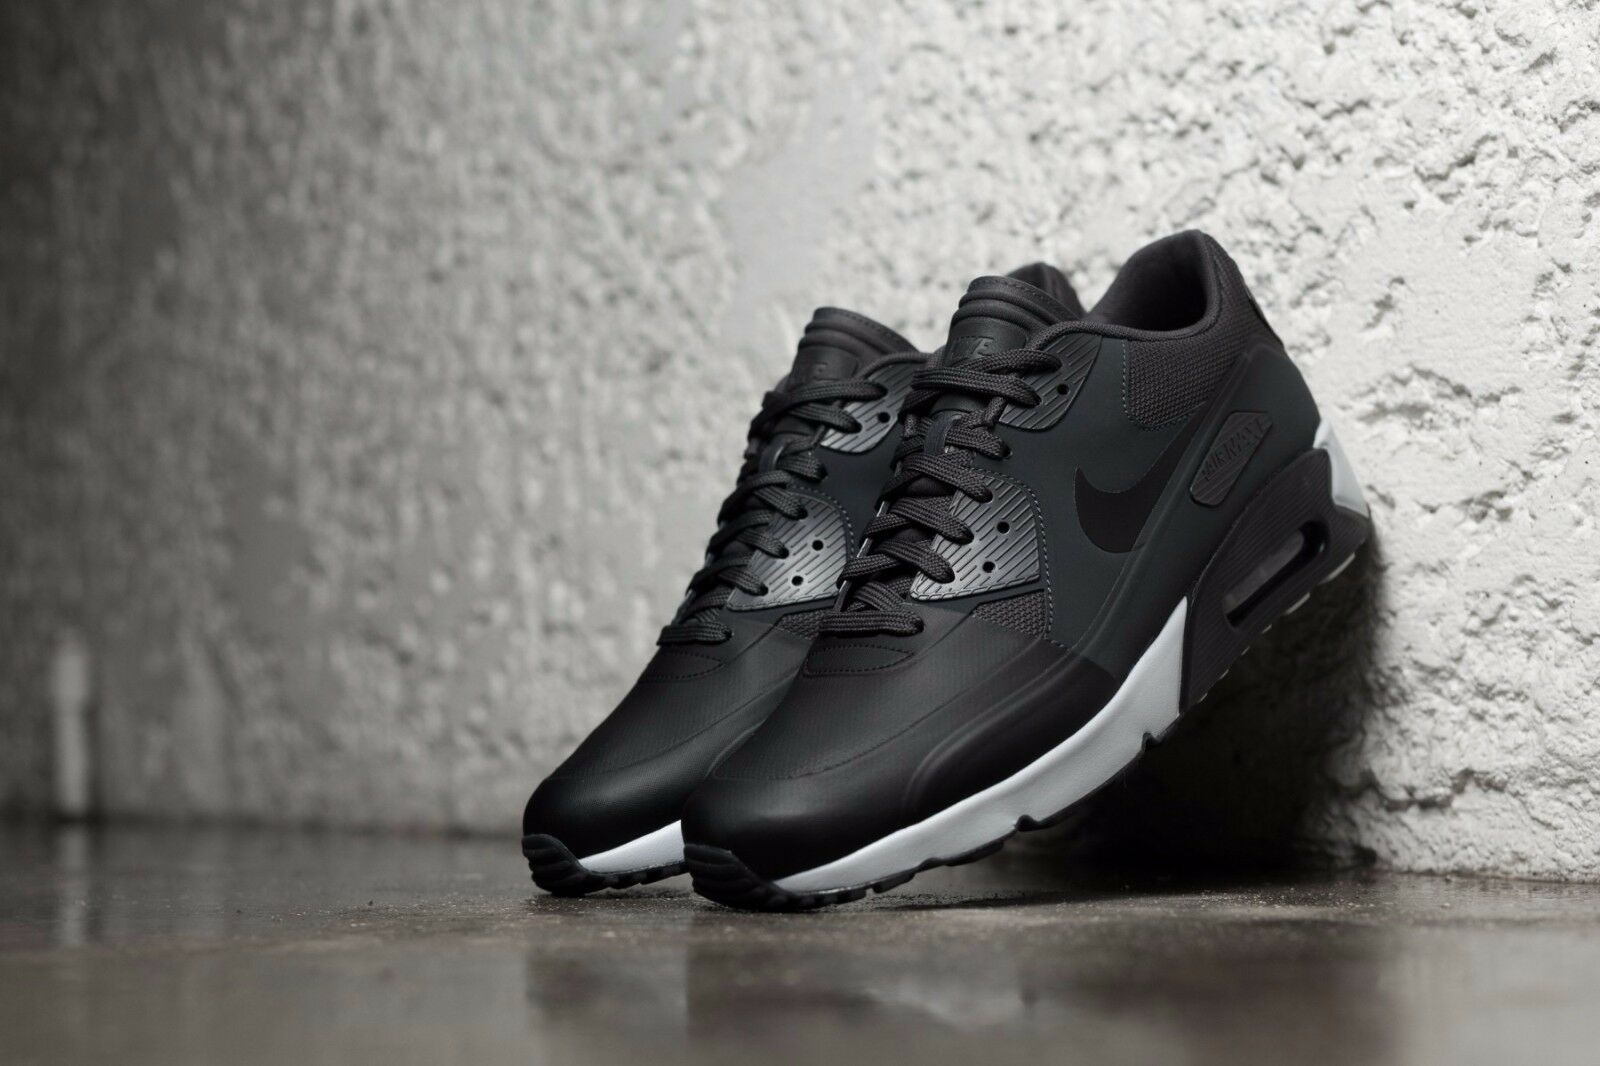 NIKE AIR MAX 90 ULTRA 2.0 SE BLACK-BLACK-ANTHRACITE Mens Sz 9.5 876005-003